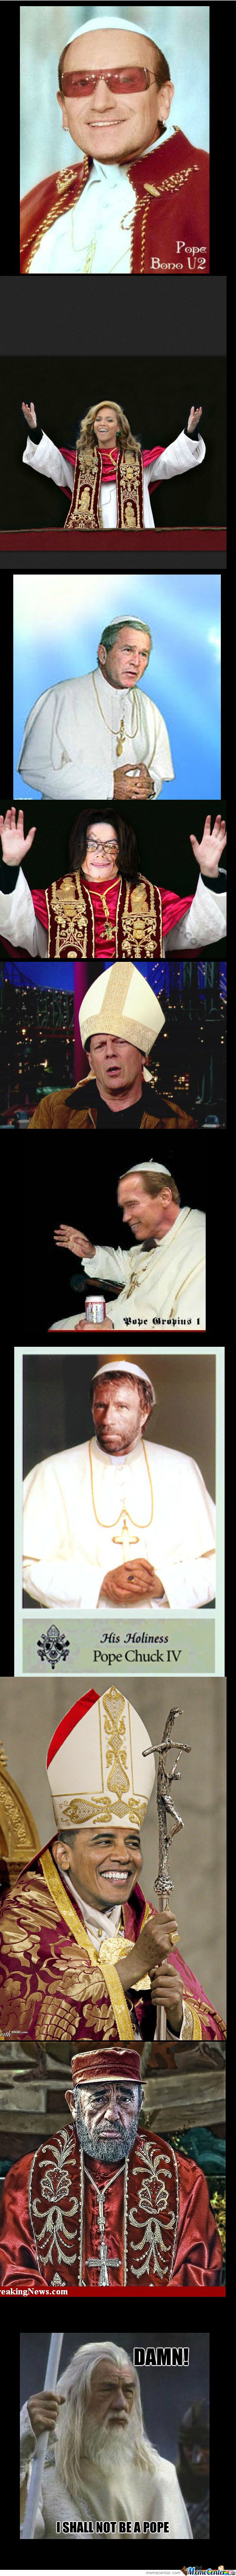 Newest Pope Candidates (Chuck Norris Would Be My Choice)